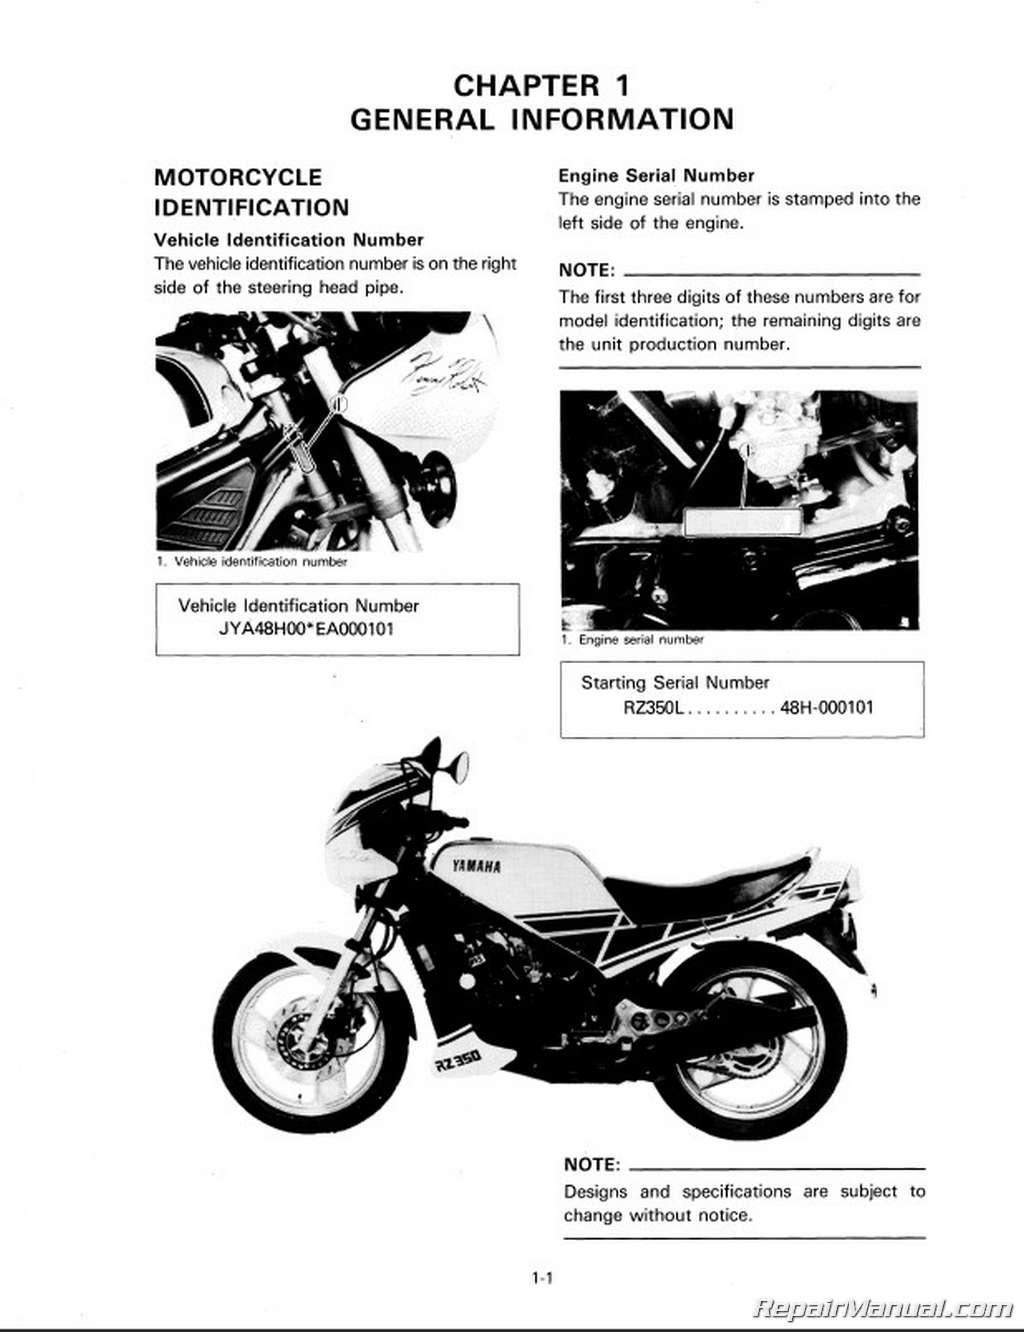 1984  U2013 1985 Yamaha Rz350 Manual Motorcycle Service